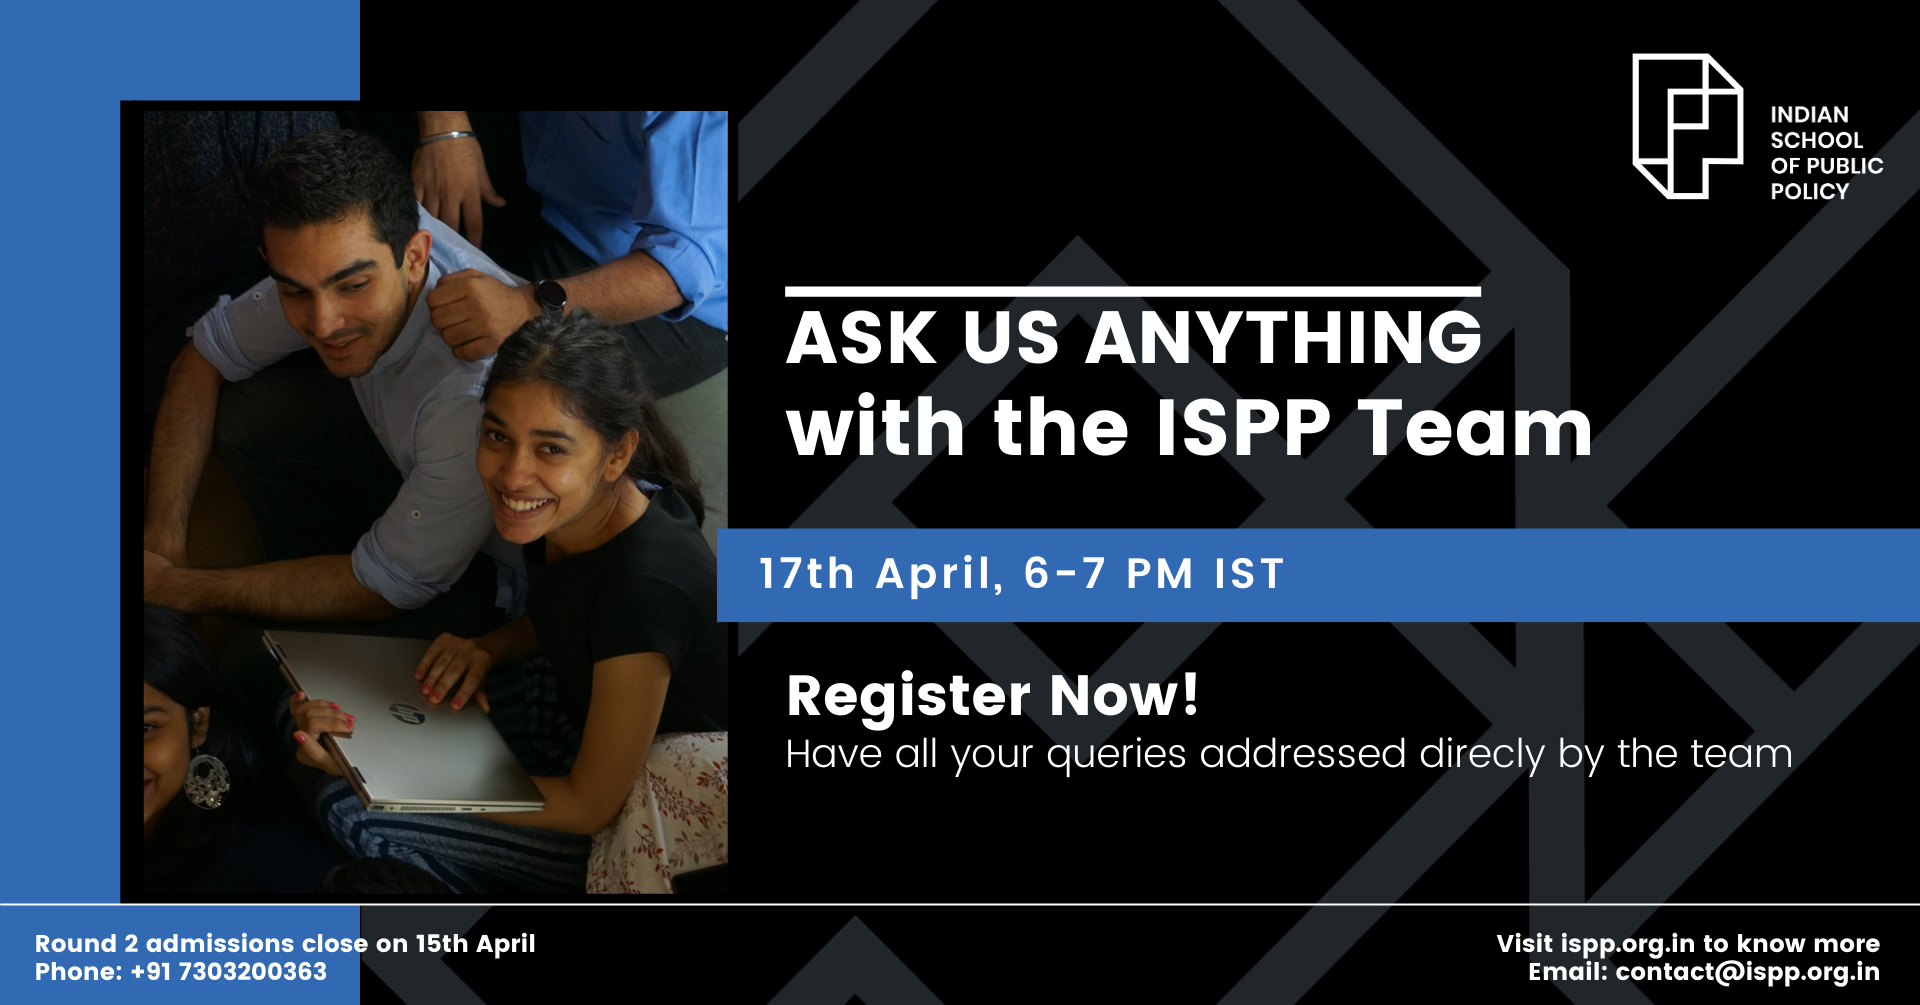 Ask Us Anything with the ISPP Team